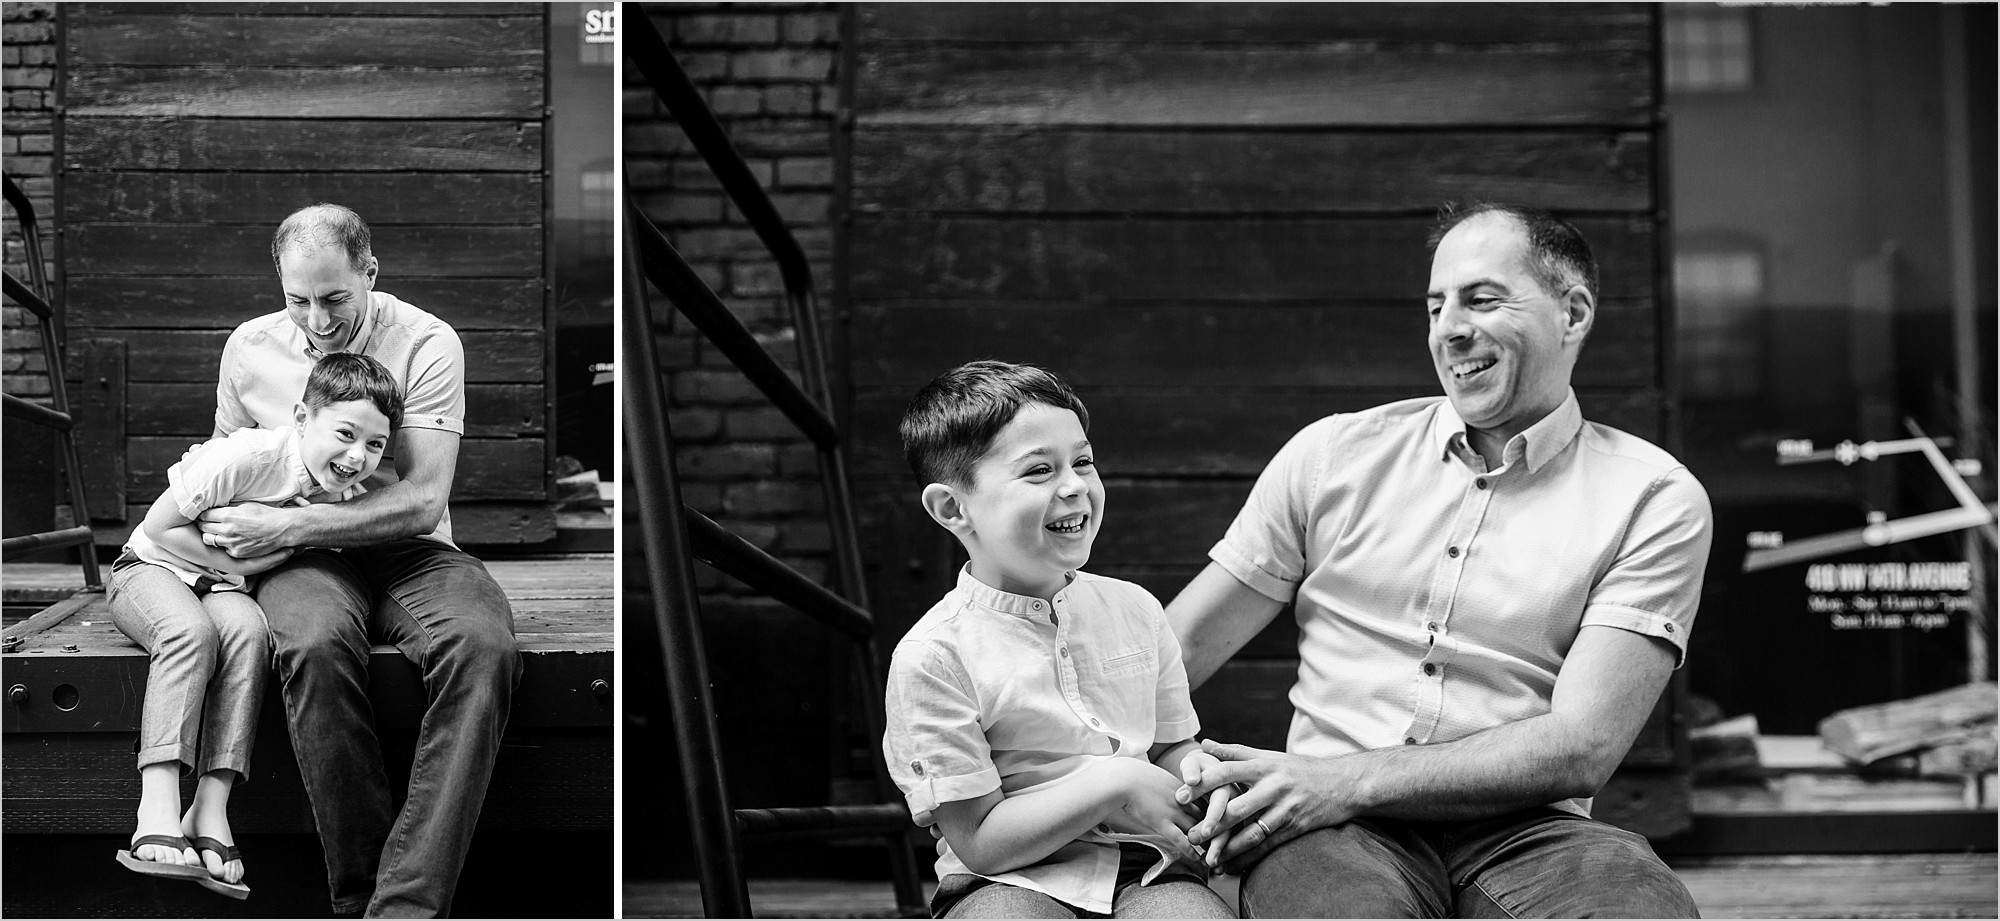 monochrome images of father and son laughing in the pearl district downtown portland oregon for modern urban family photos by hunnicutt photography.jpg